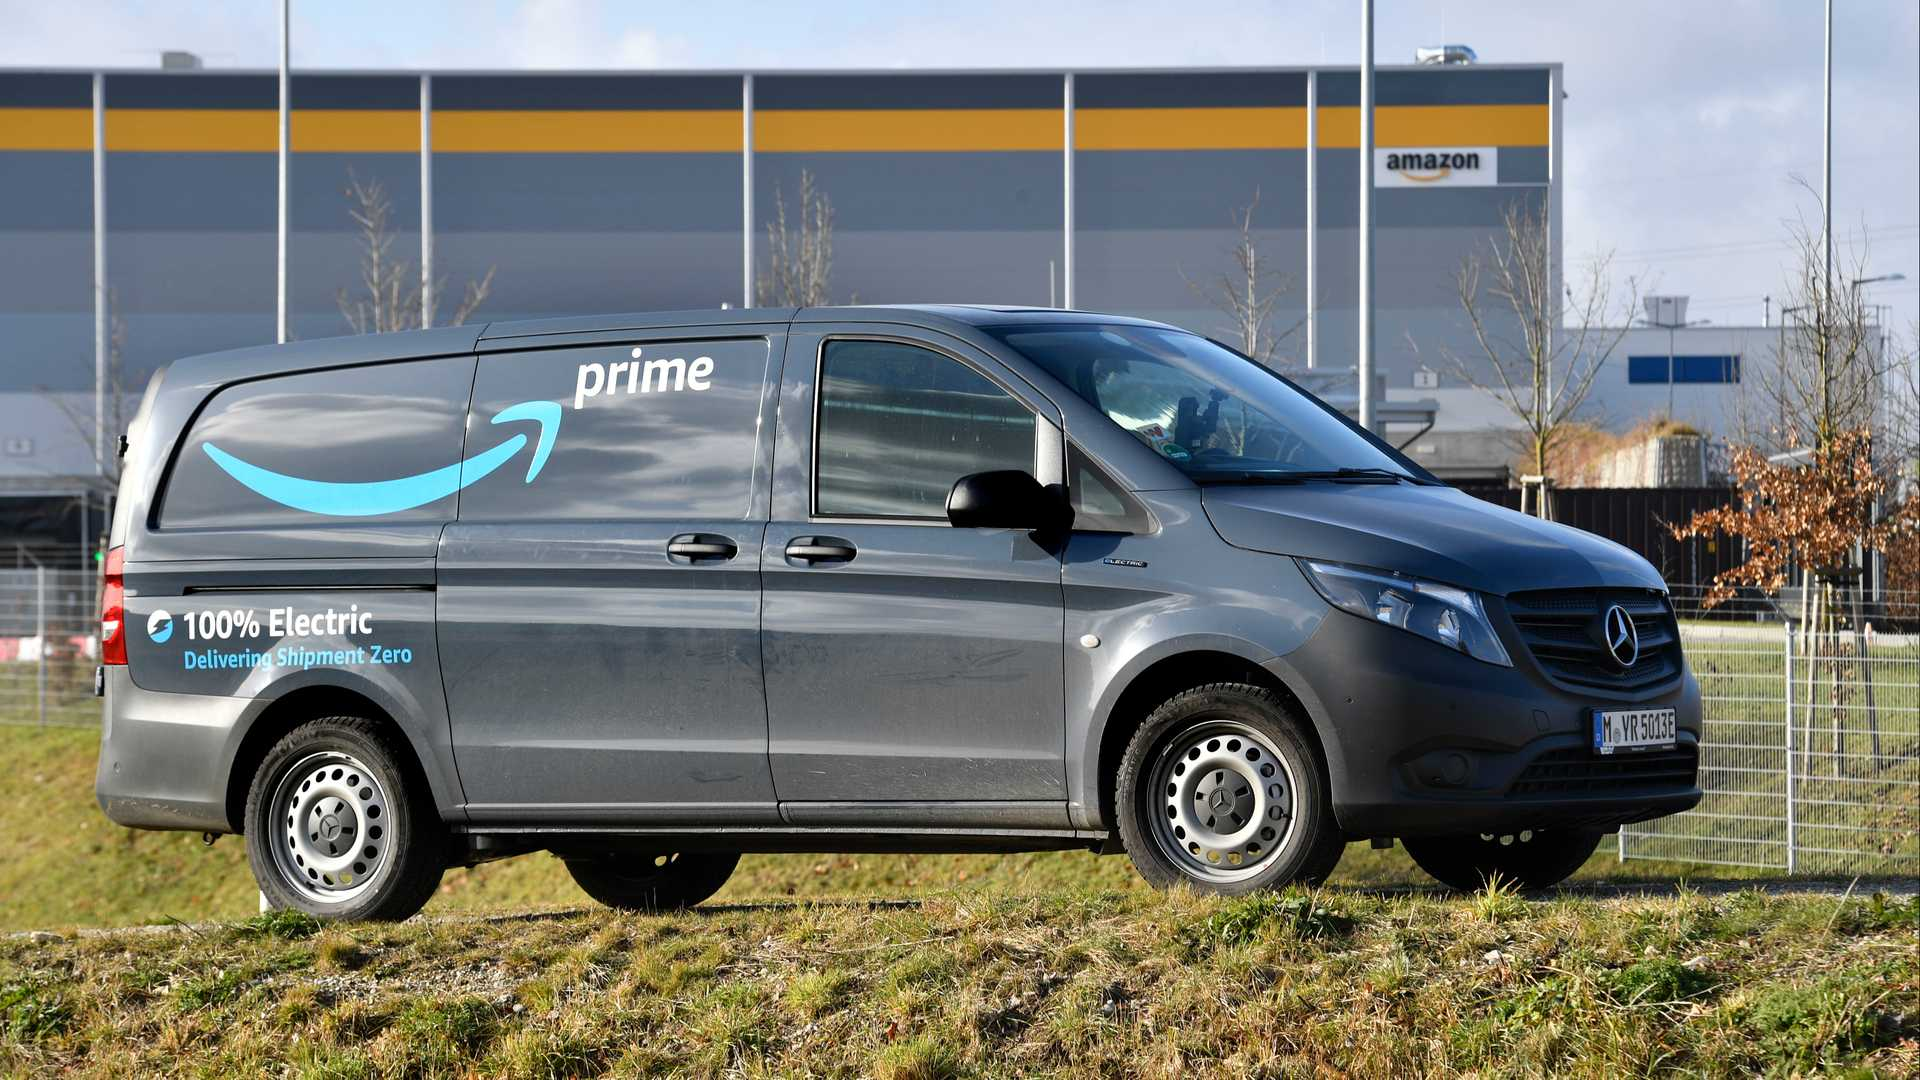 Mercedes Benz Evito Amazon Europe